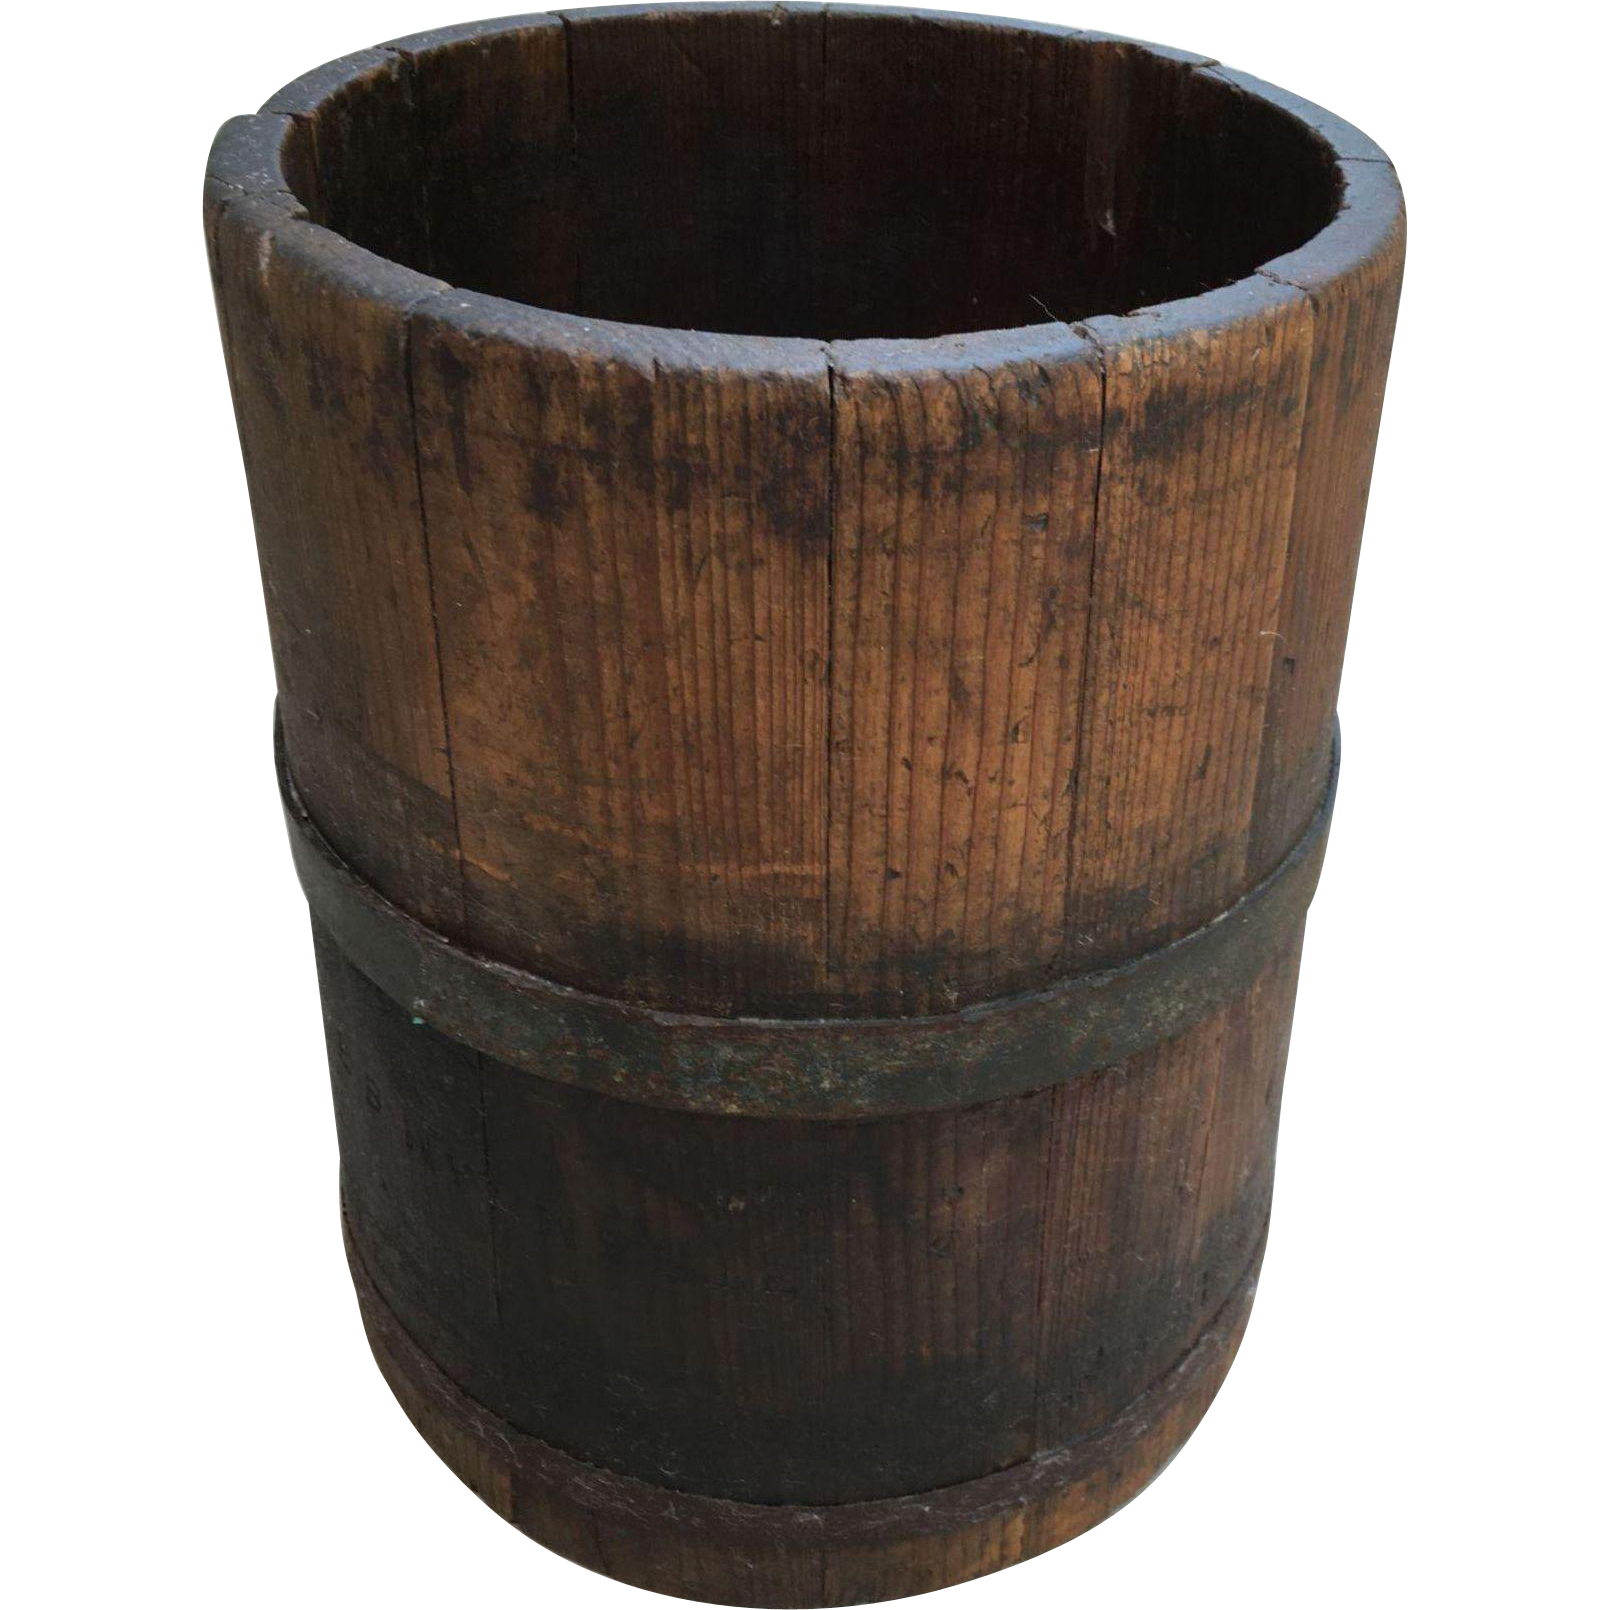 Wooden bucket png. Early antique dry measure